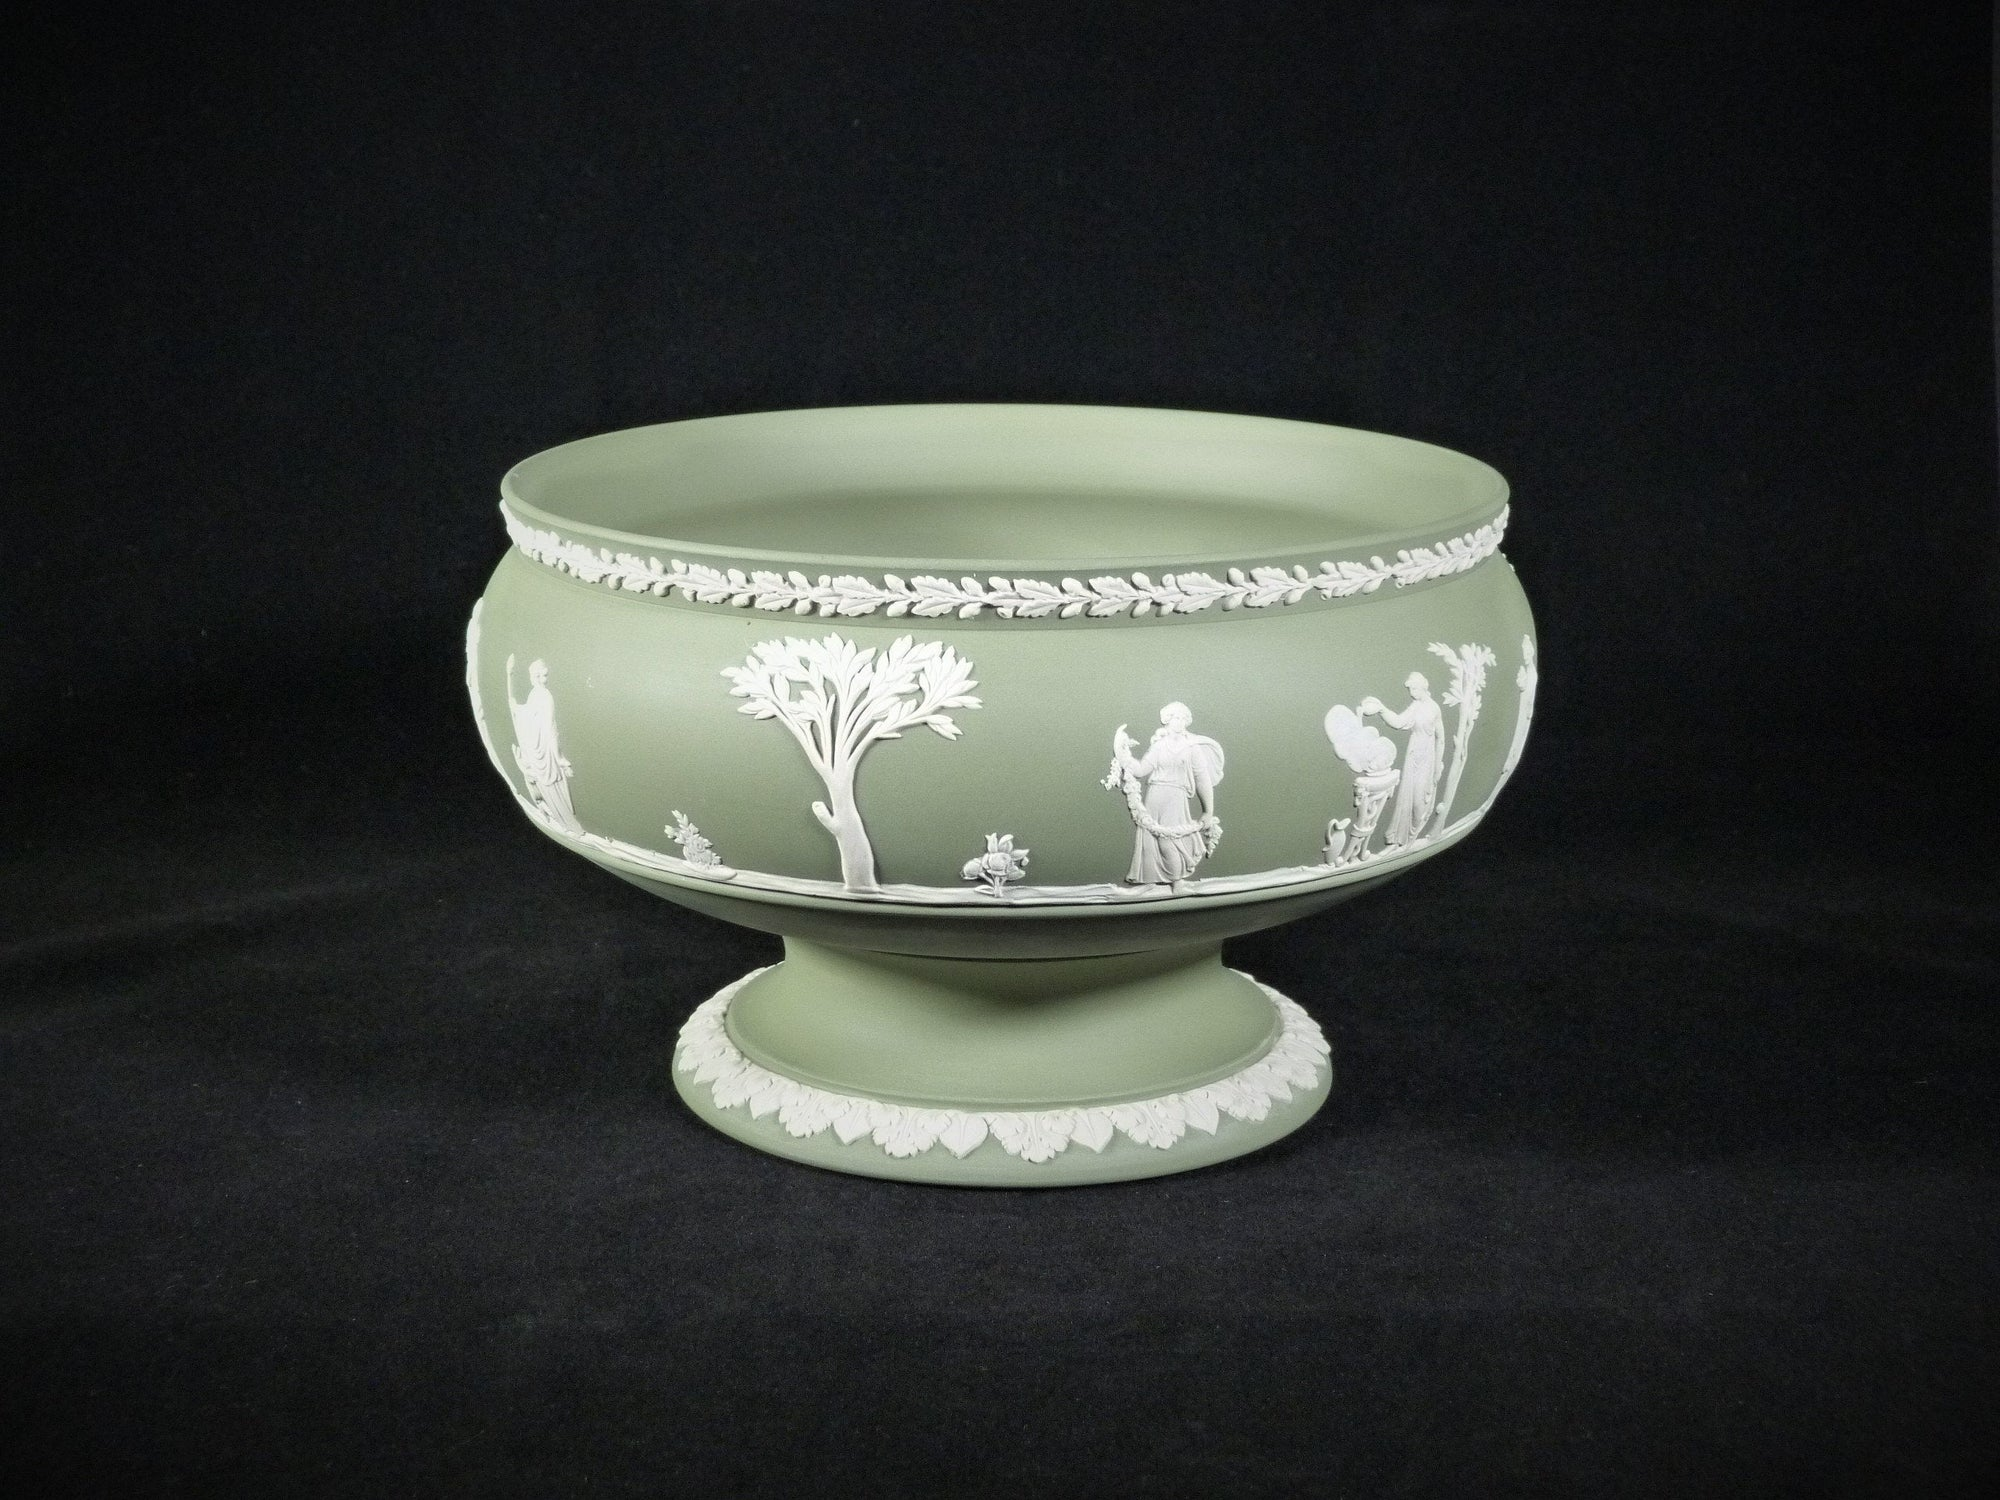 Superb Wedgwood Jasperware Green Bowl, Table Centrepiece